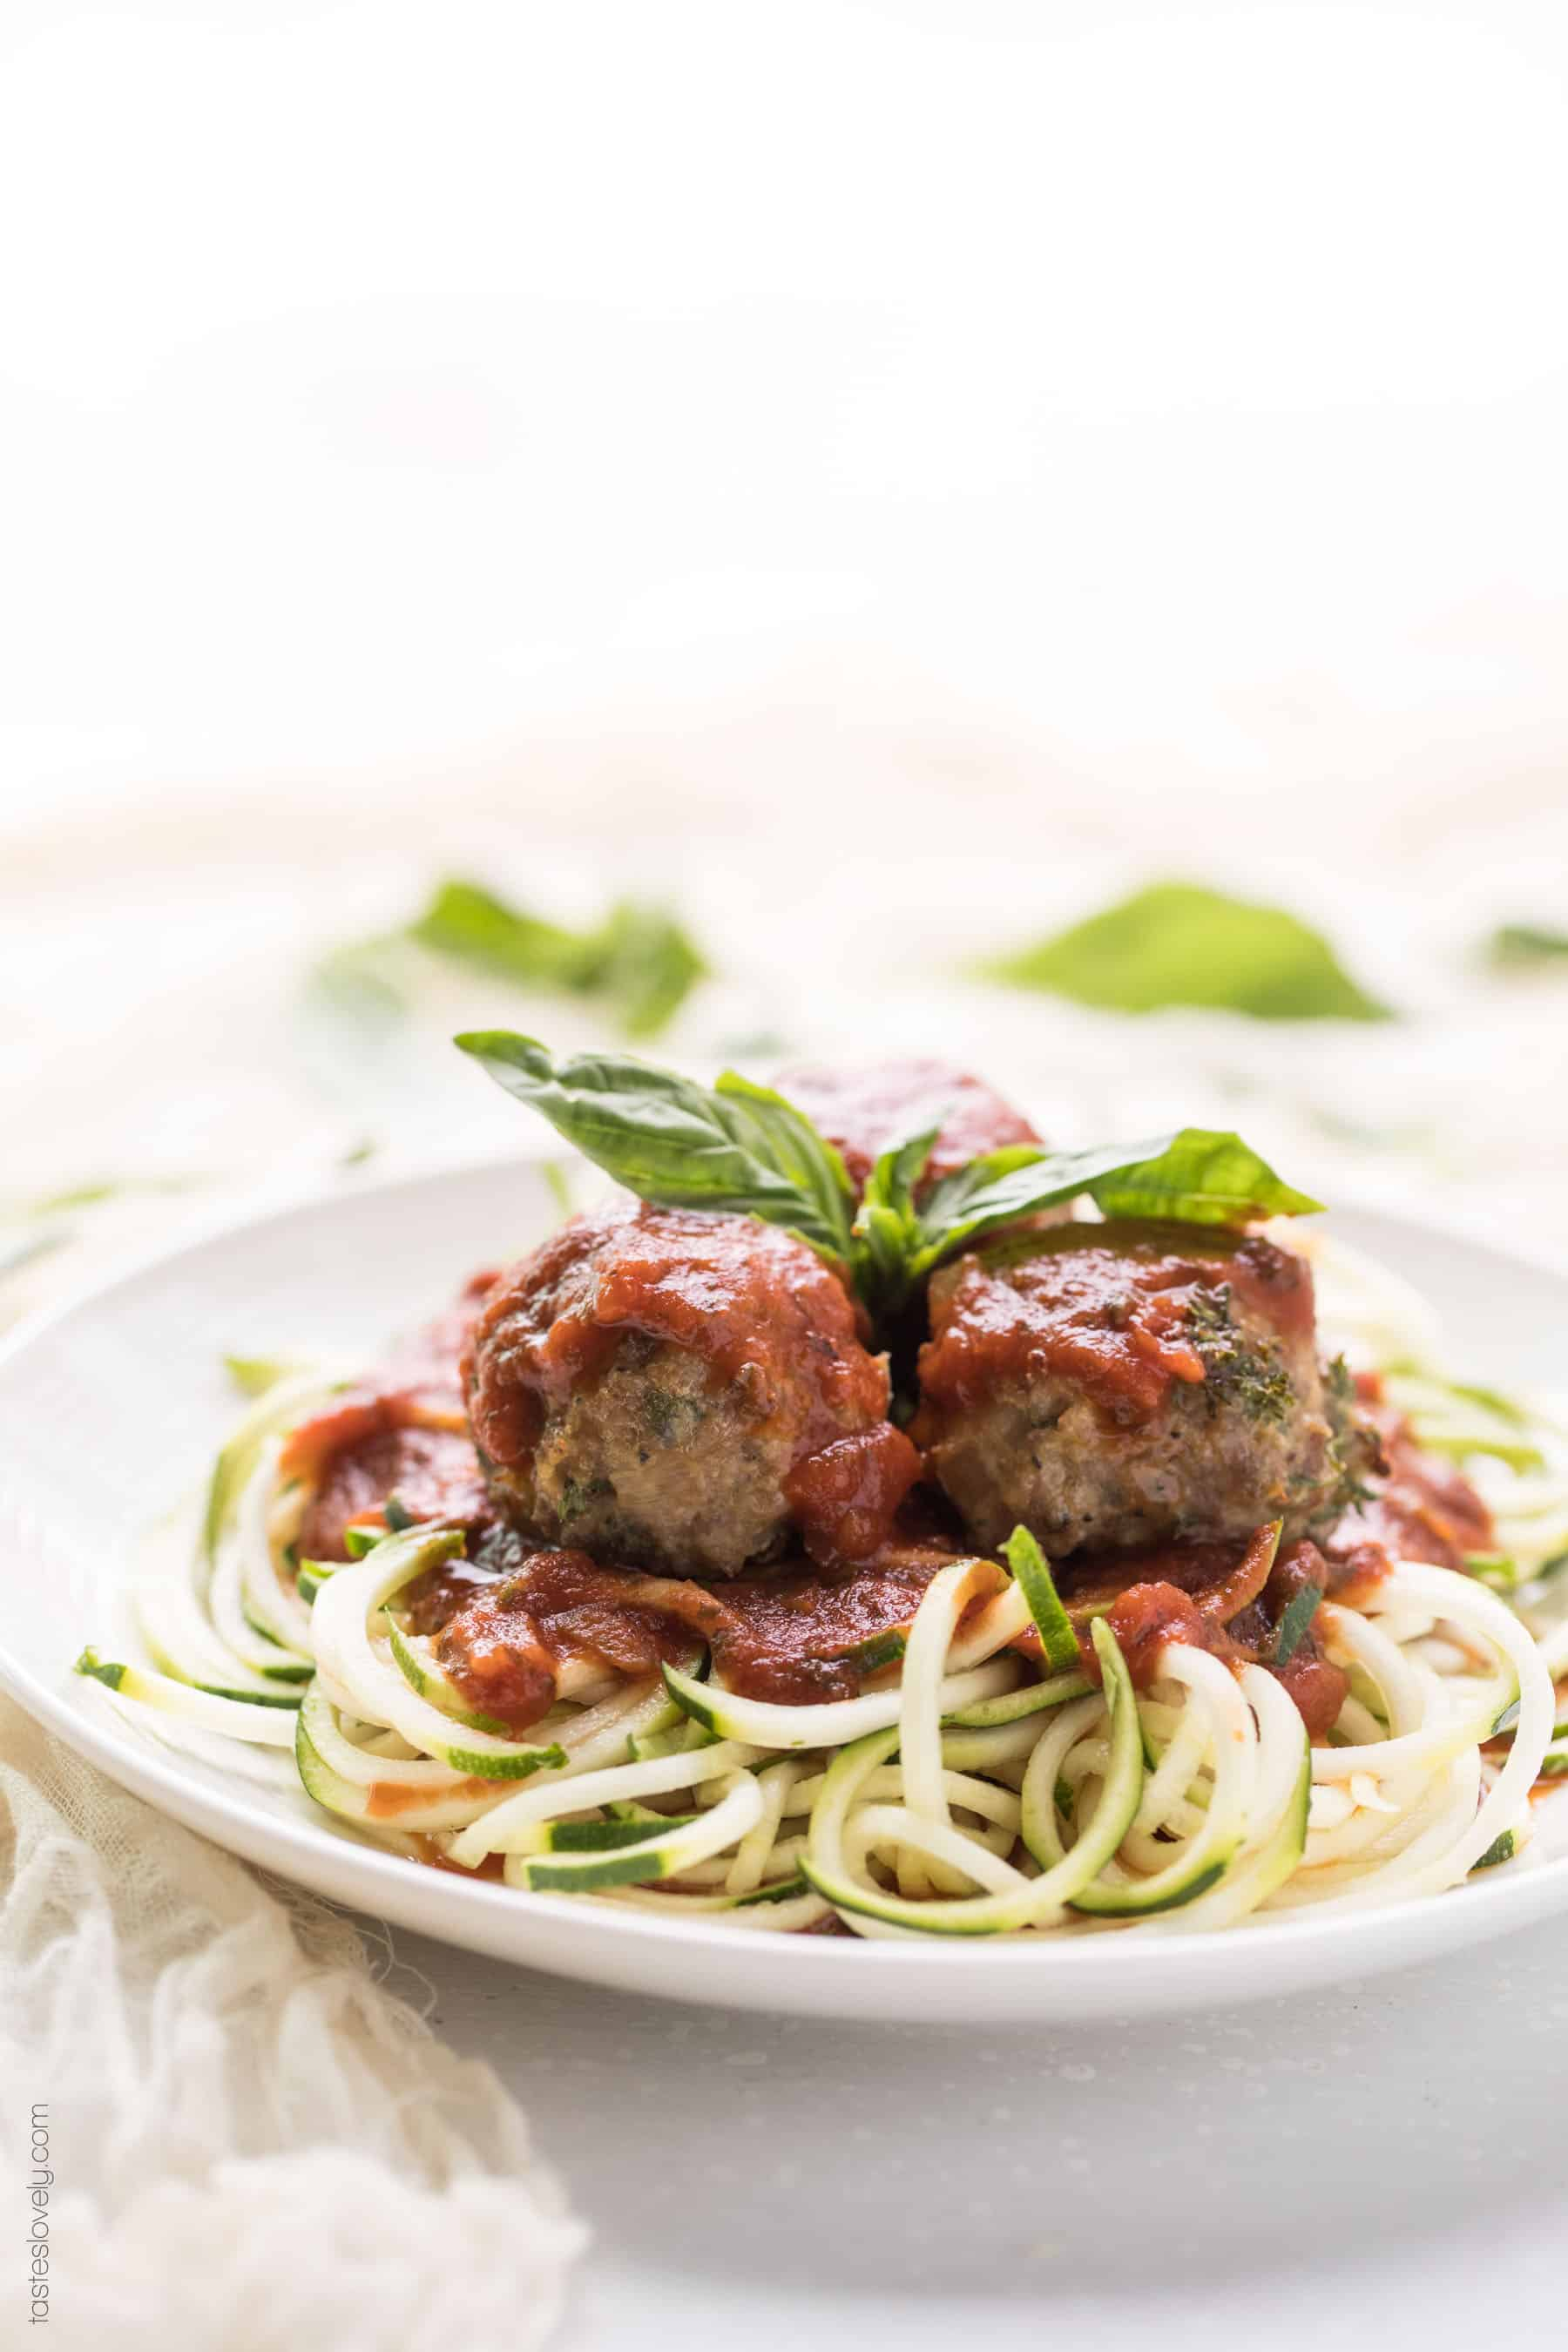 meatballs on a plate with zucchini noodles